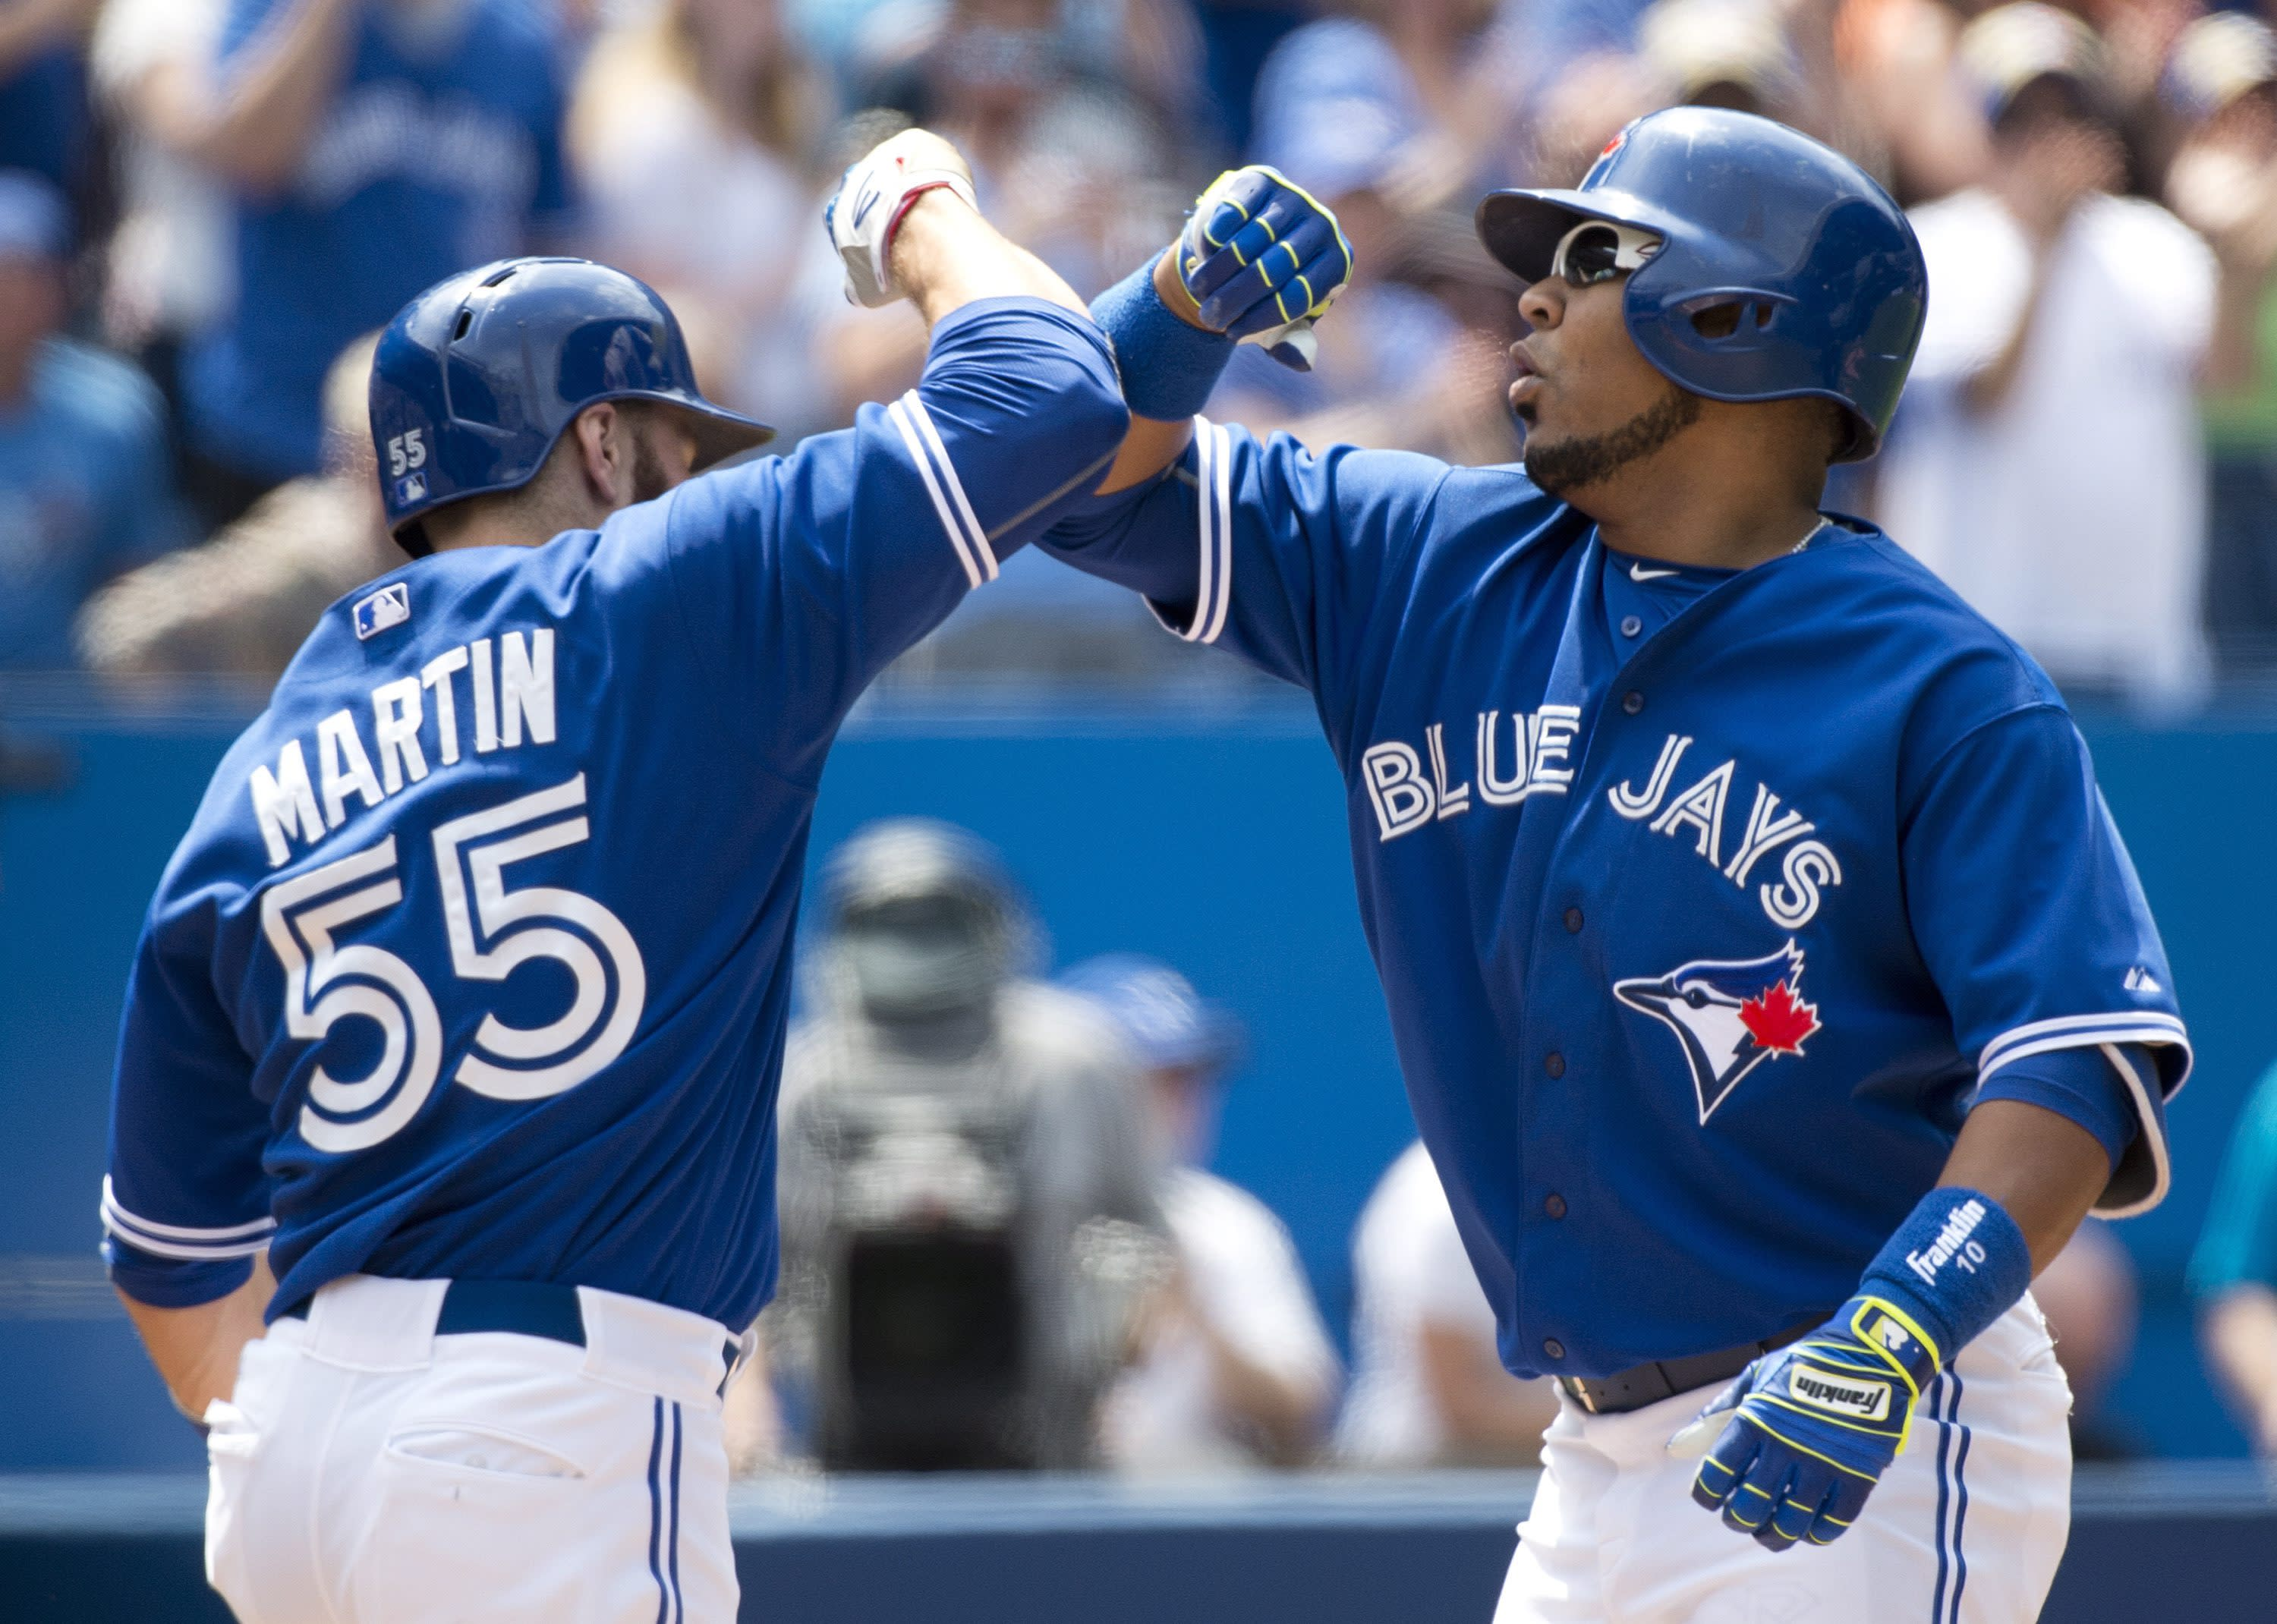 Encarnacion and Goins homer, Blue Jays beat Mariners 8-2